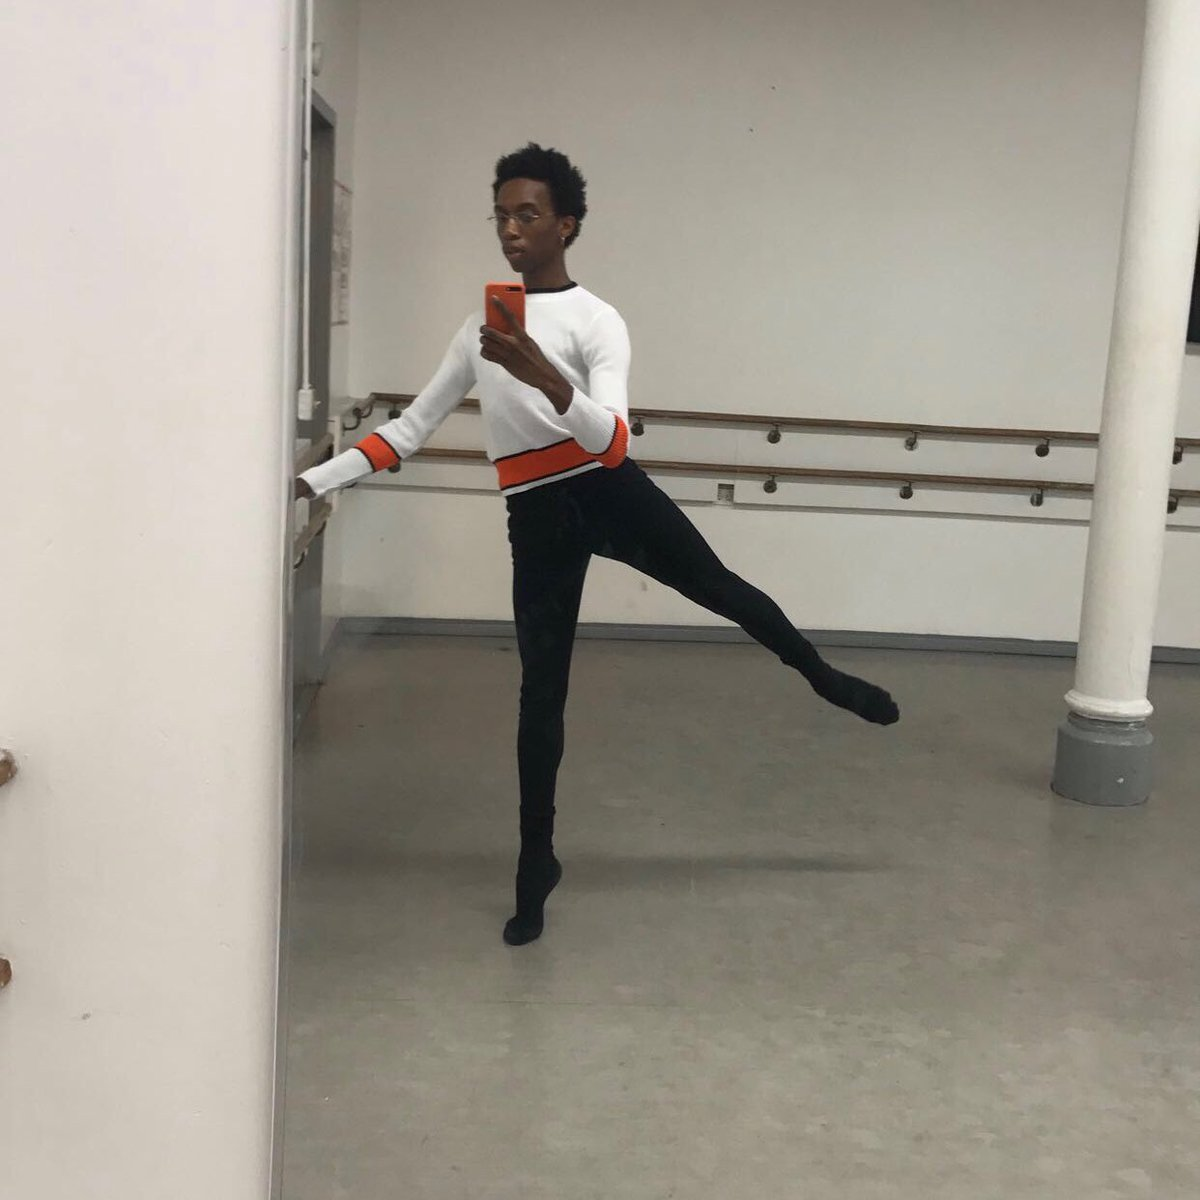 giving u some ballet linezzz 📐✨ https://t.co/Lve5thxYB0